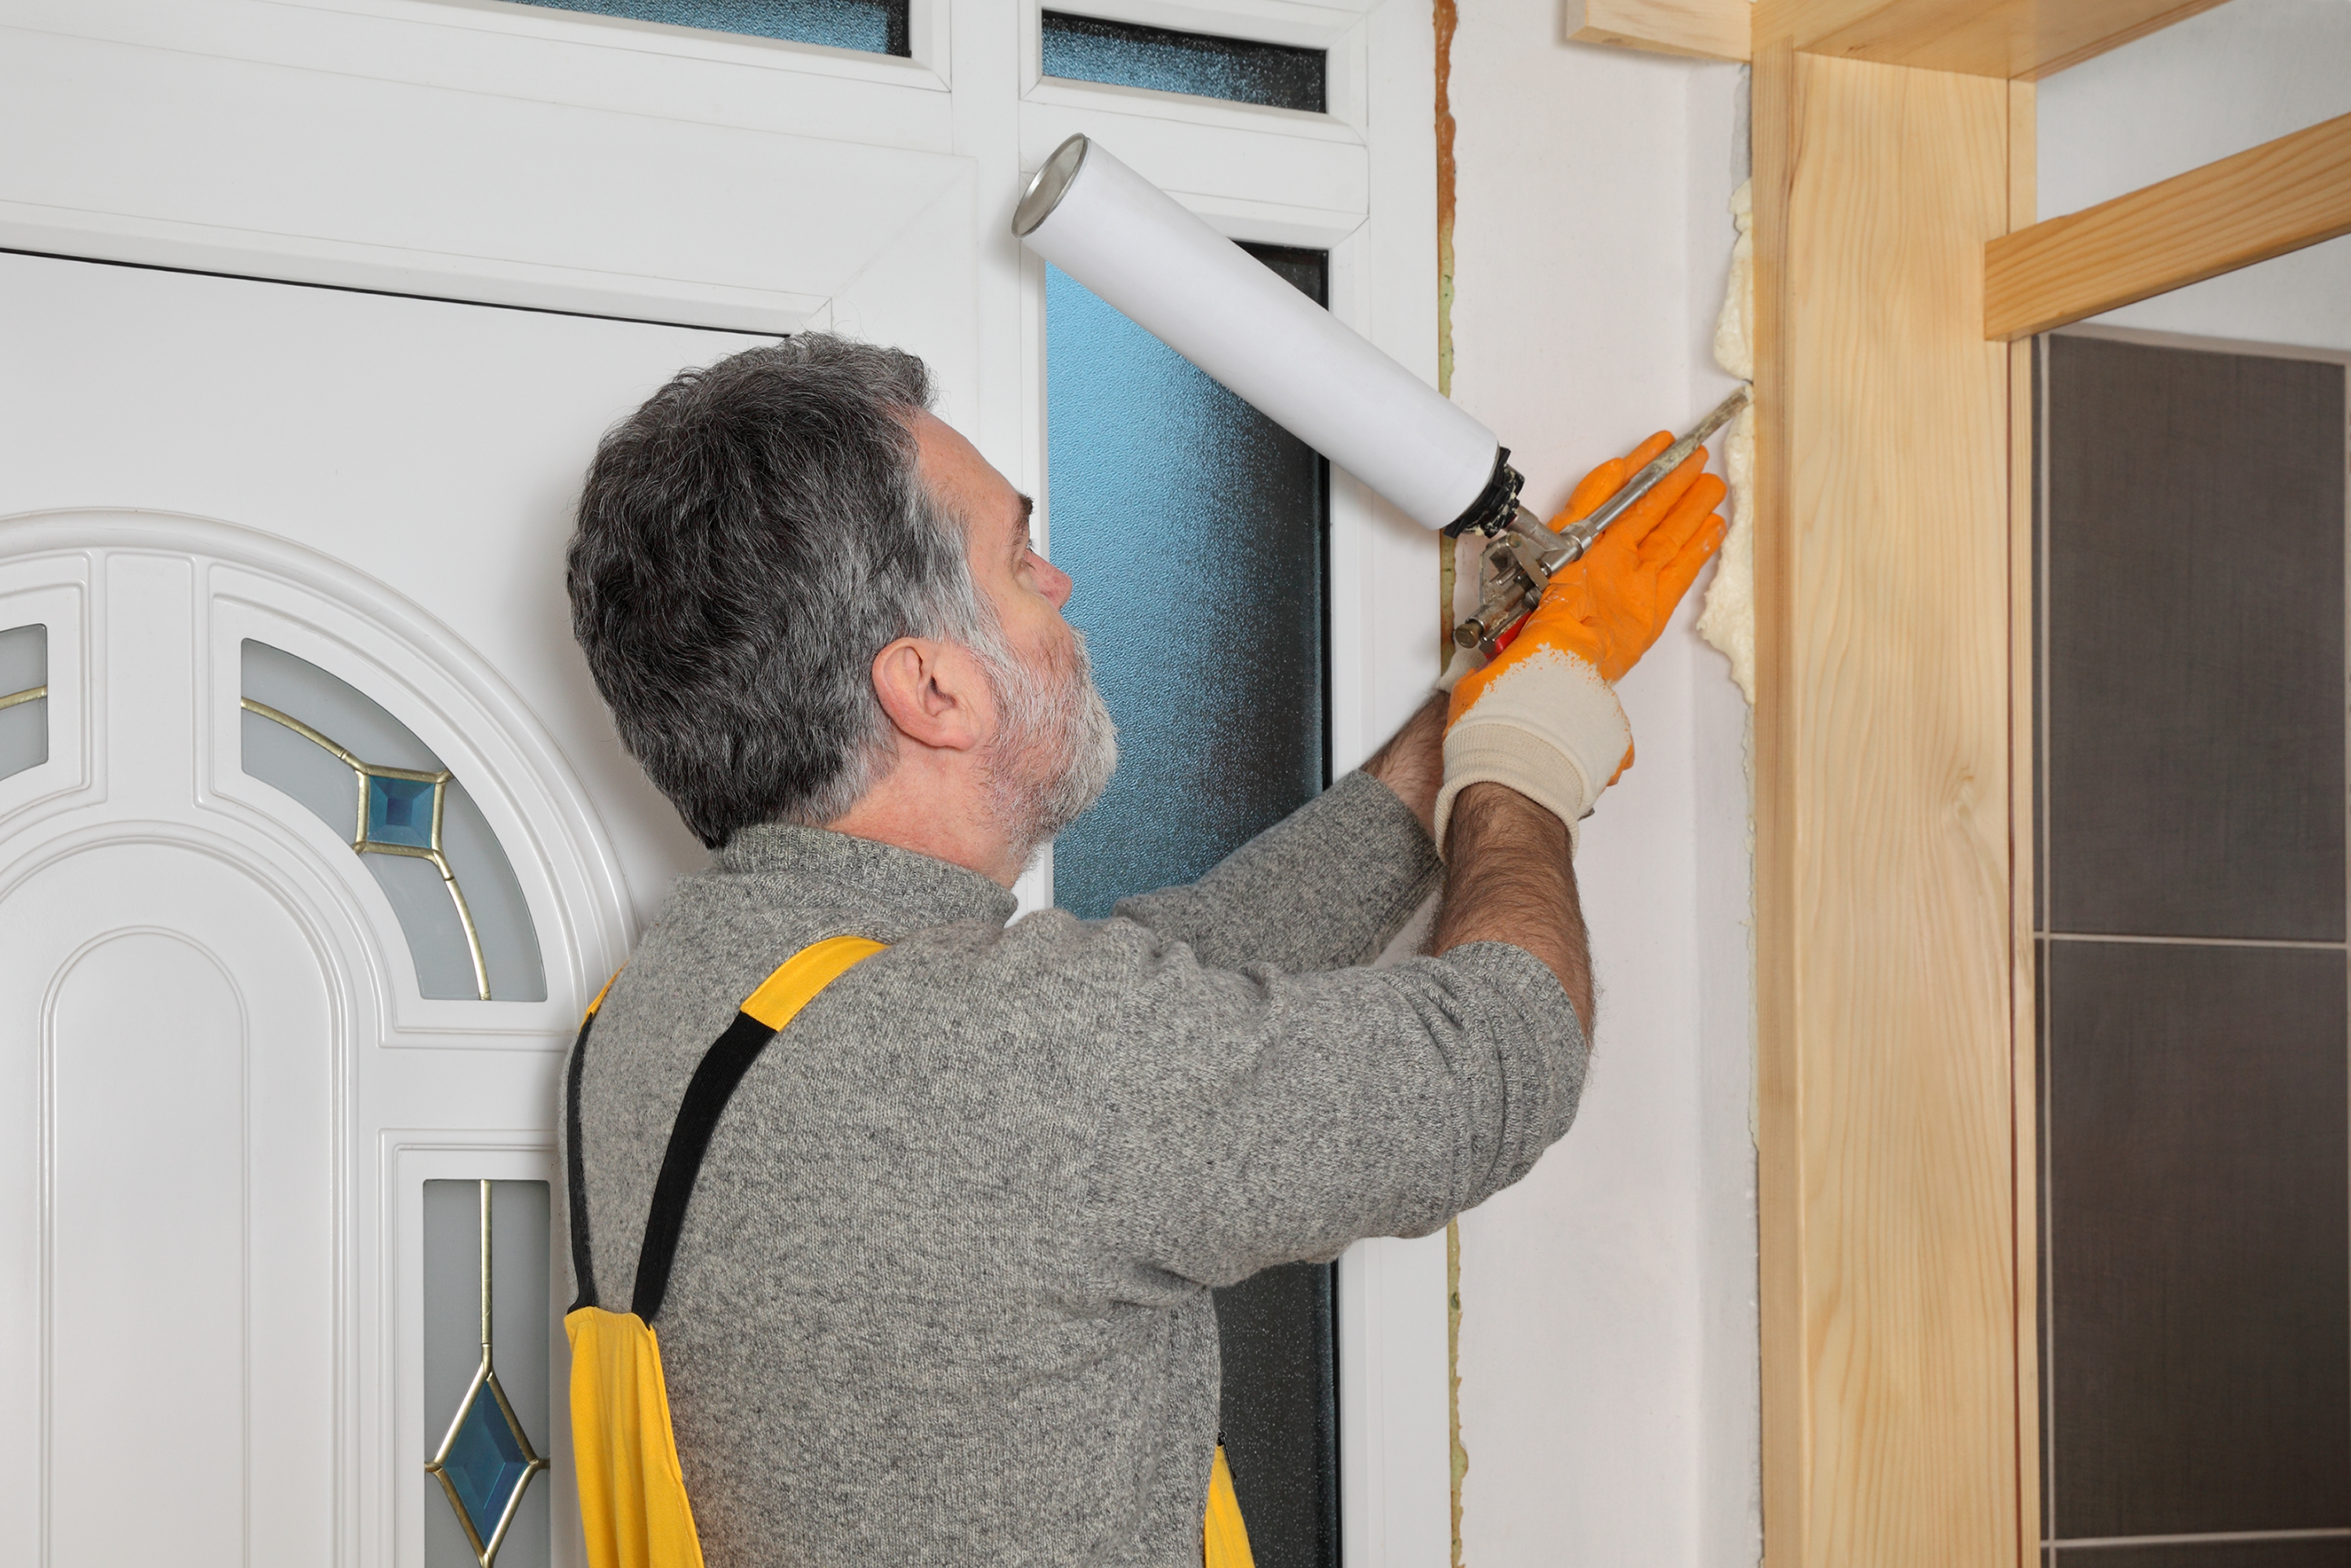 How to Size Rough Door Frame Openings | Home Guides | SF Gate